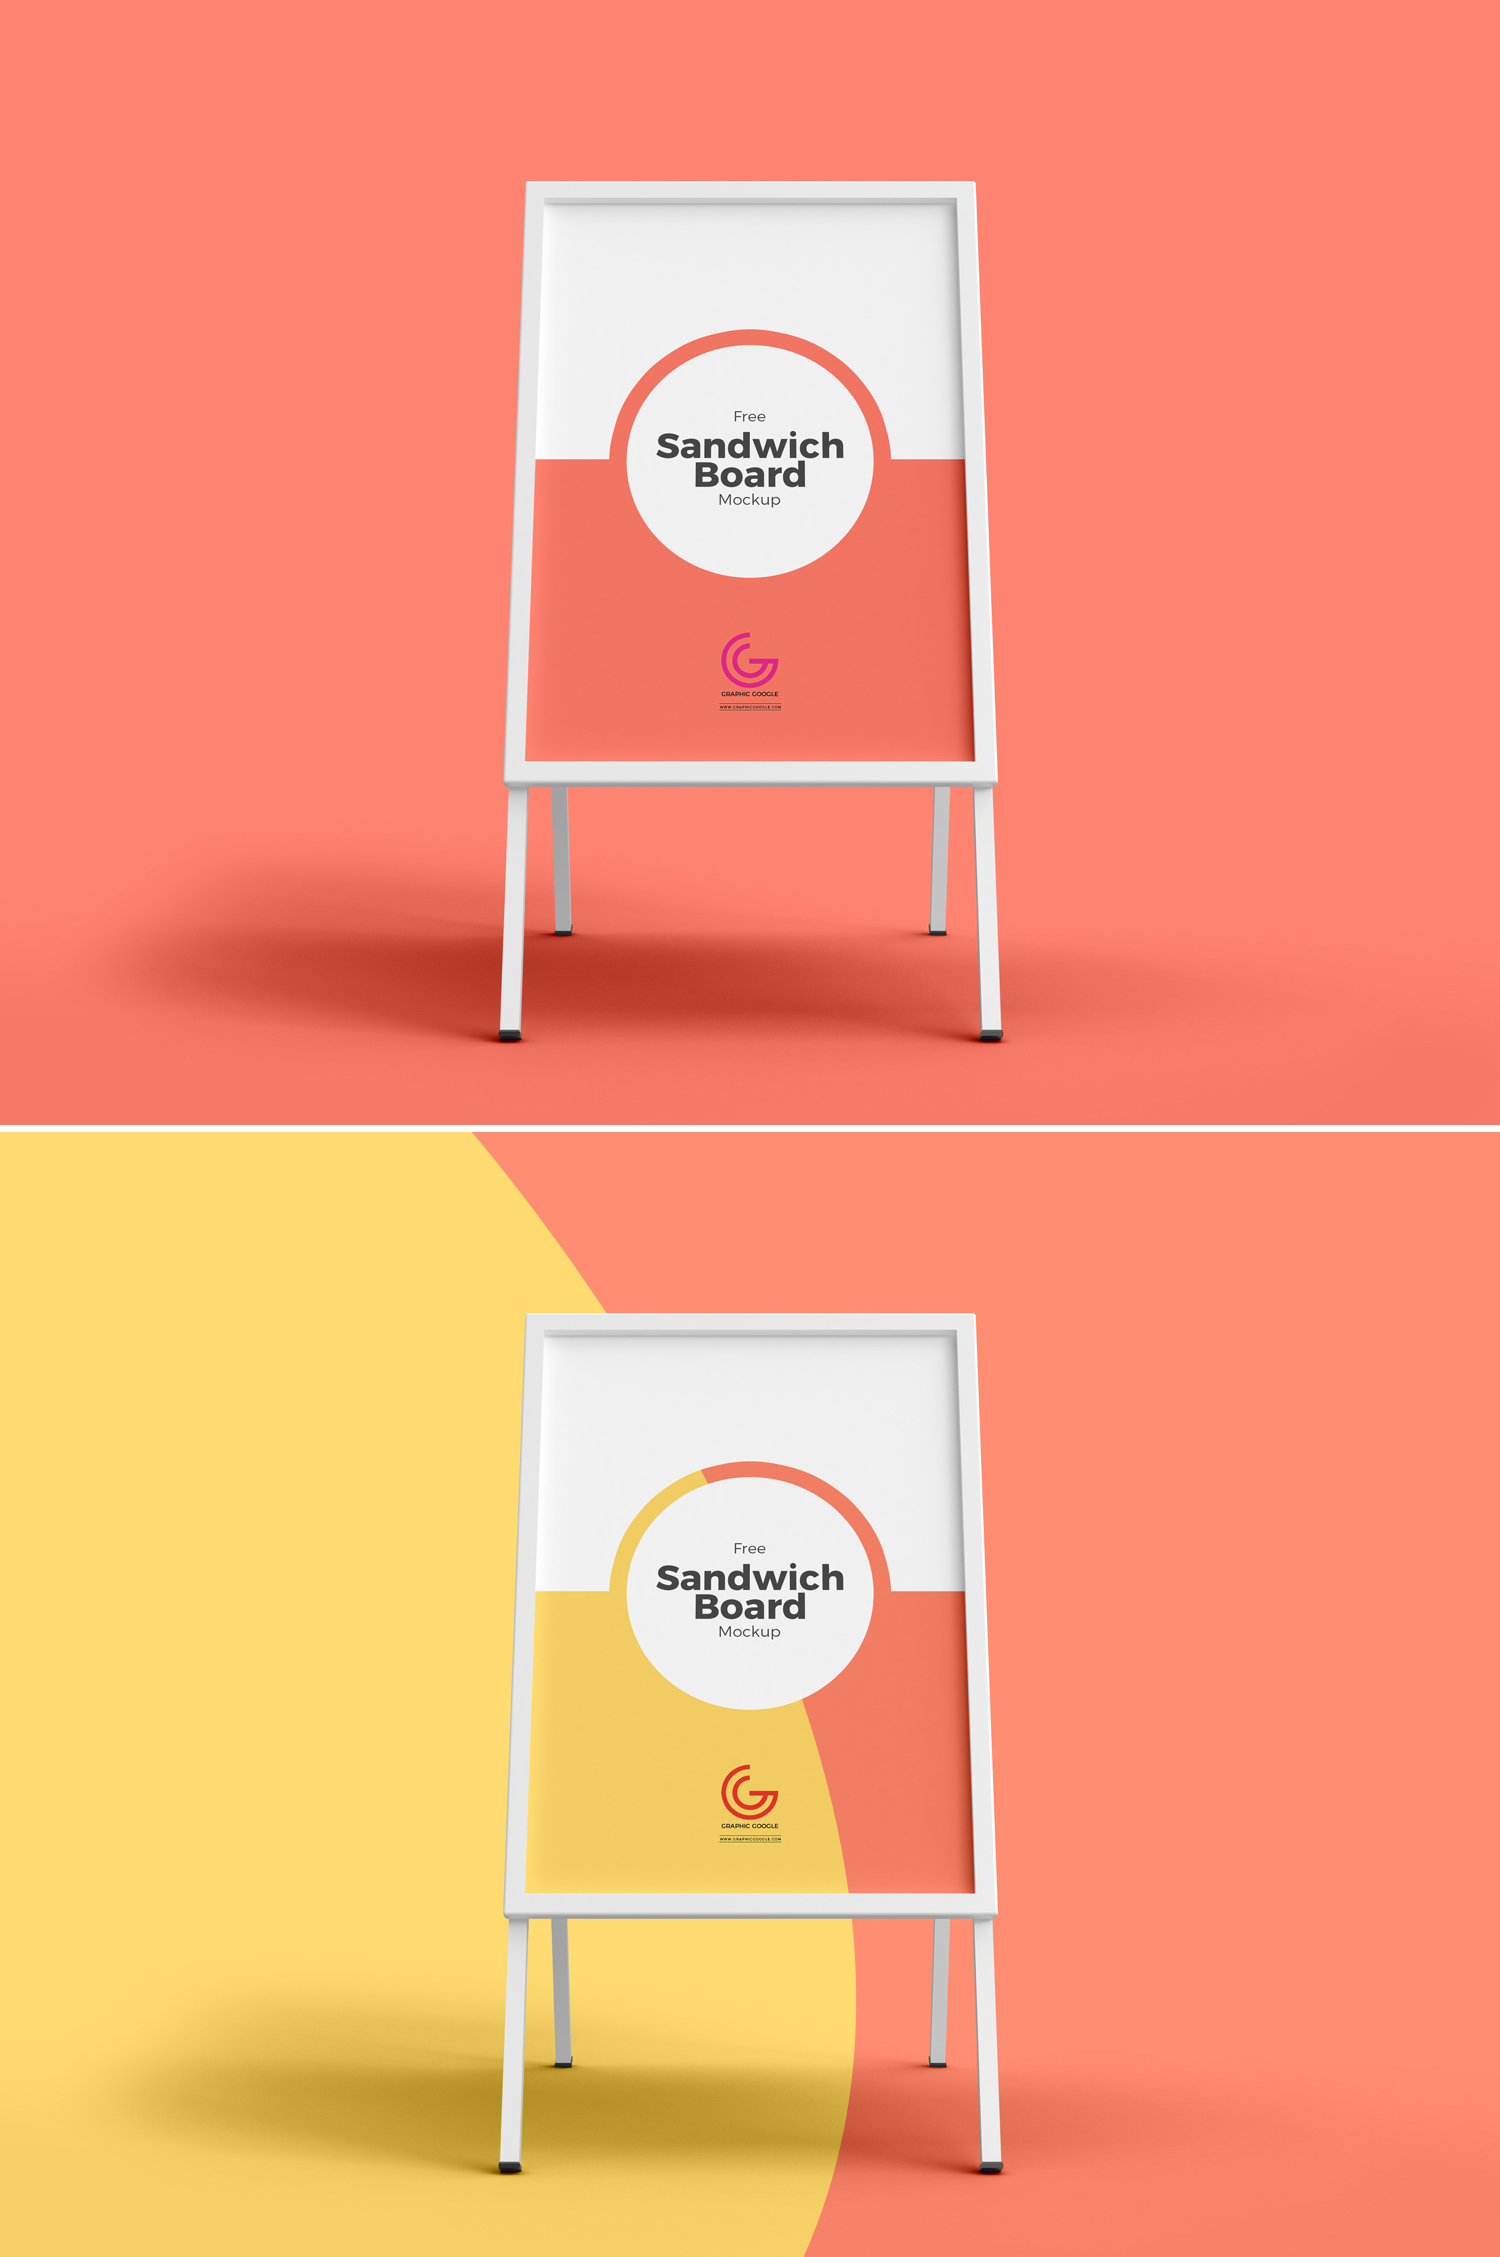 Free-Sandwich-Board-Mockup-For-Outdoor-Restaurant-Advertisement-2018